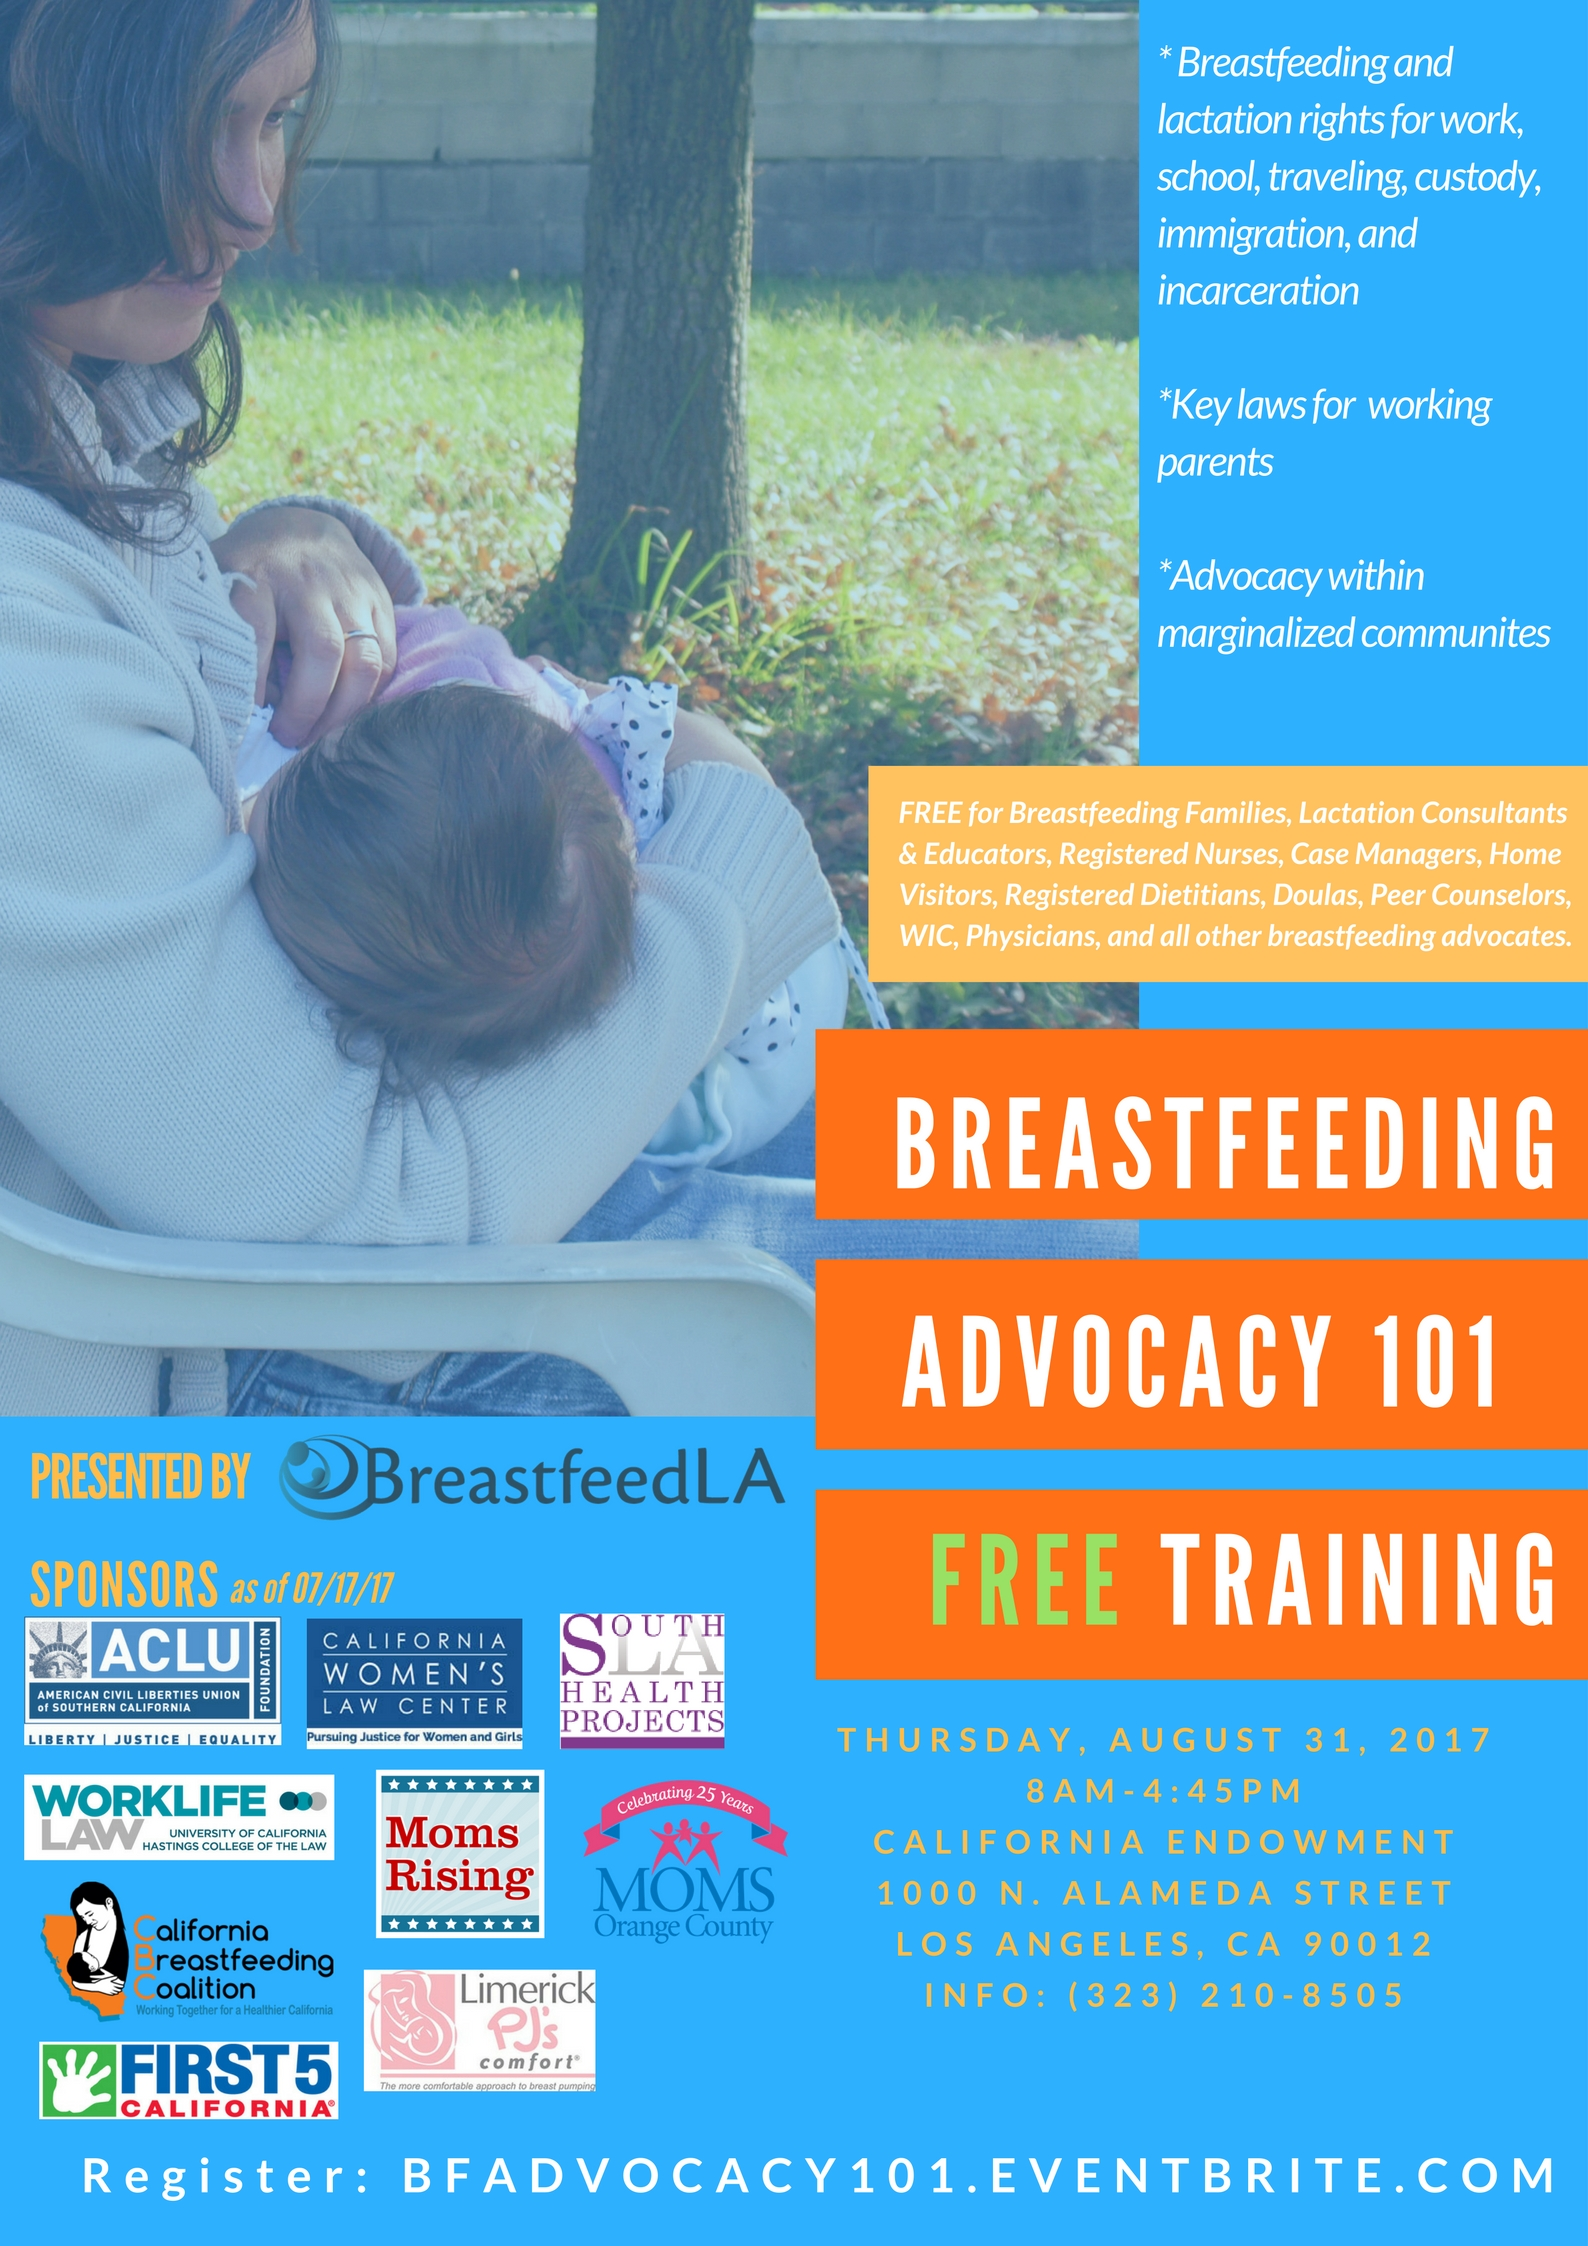 Breastfeeding Advocacy BFLA by JocelynH